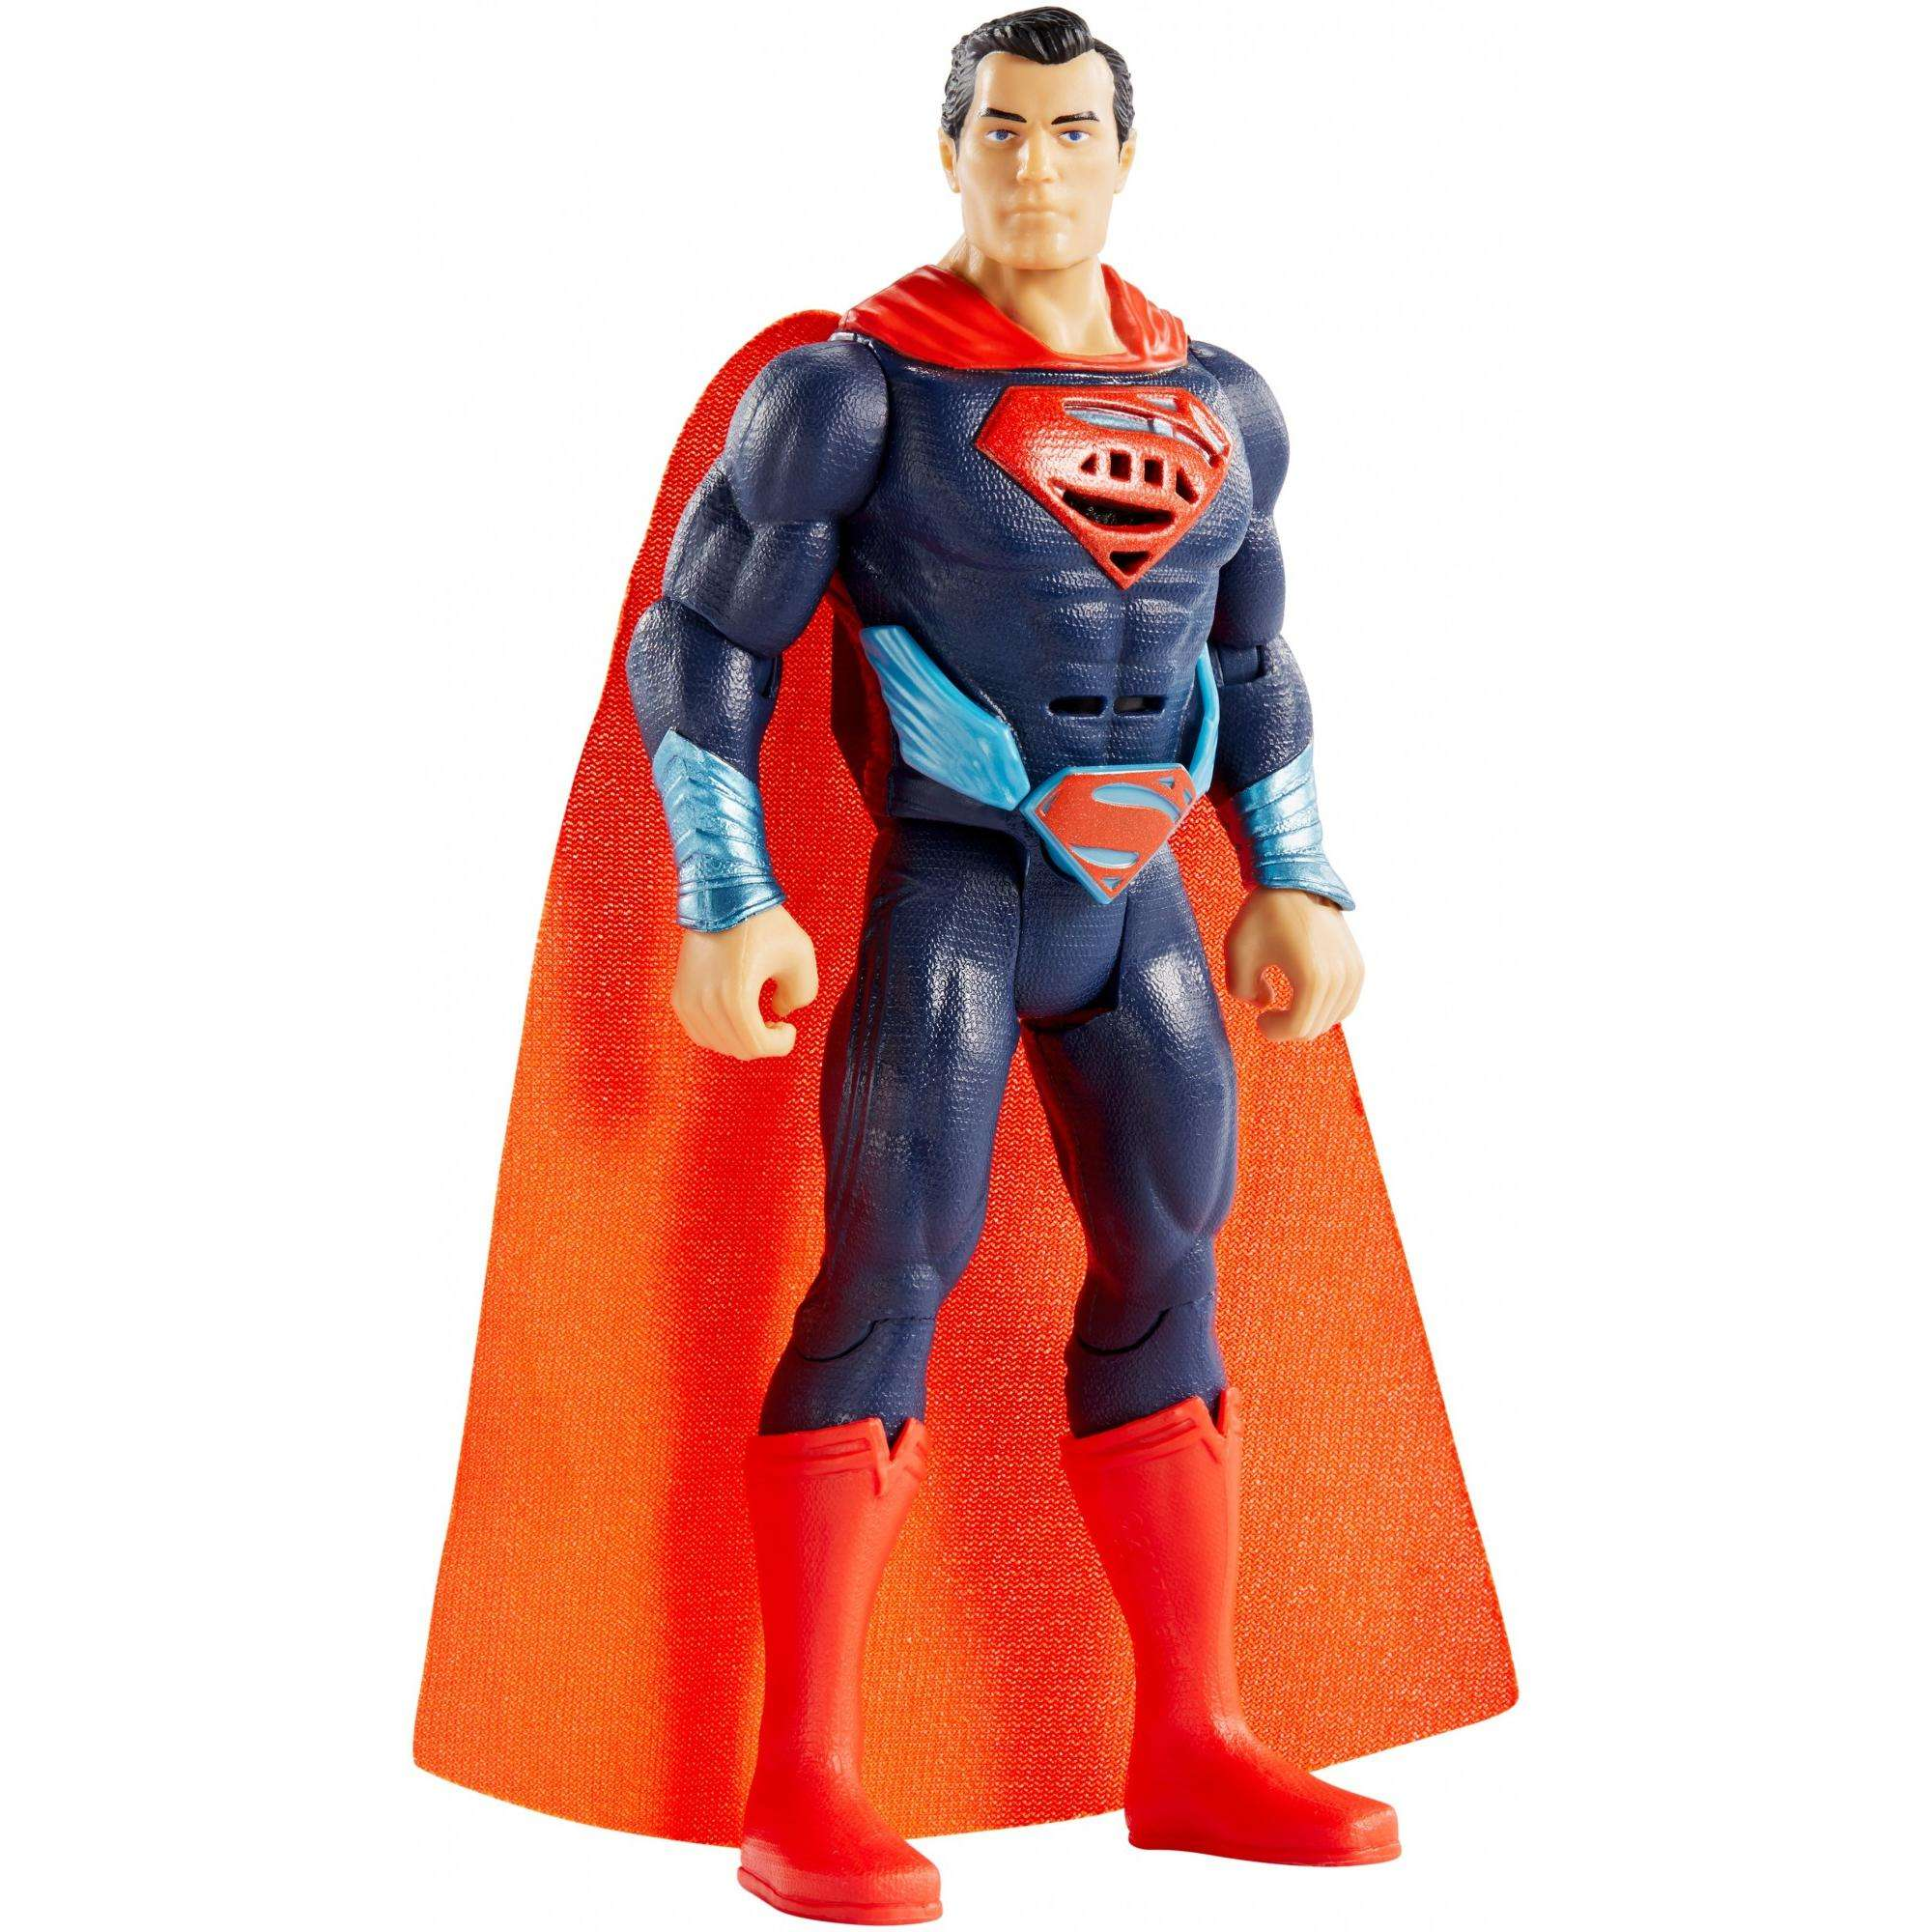 DC Justice League Talking Heroes Stealth Attack Superman Figure